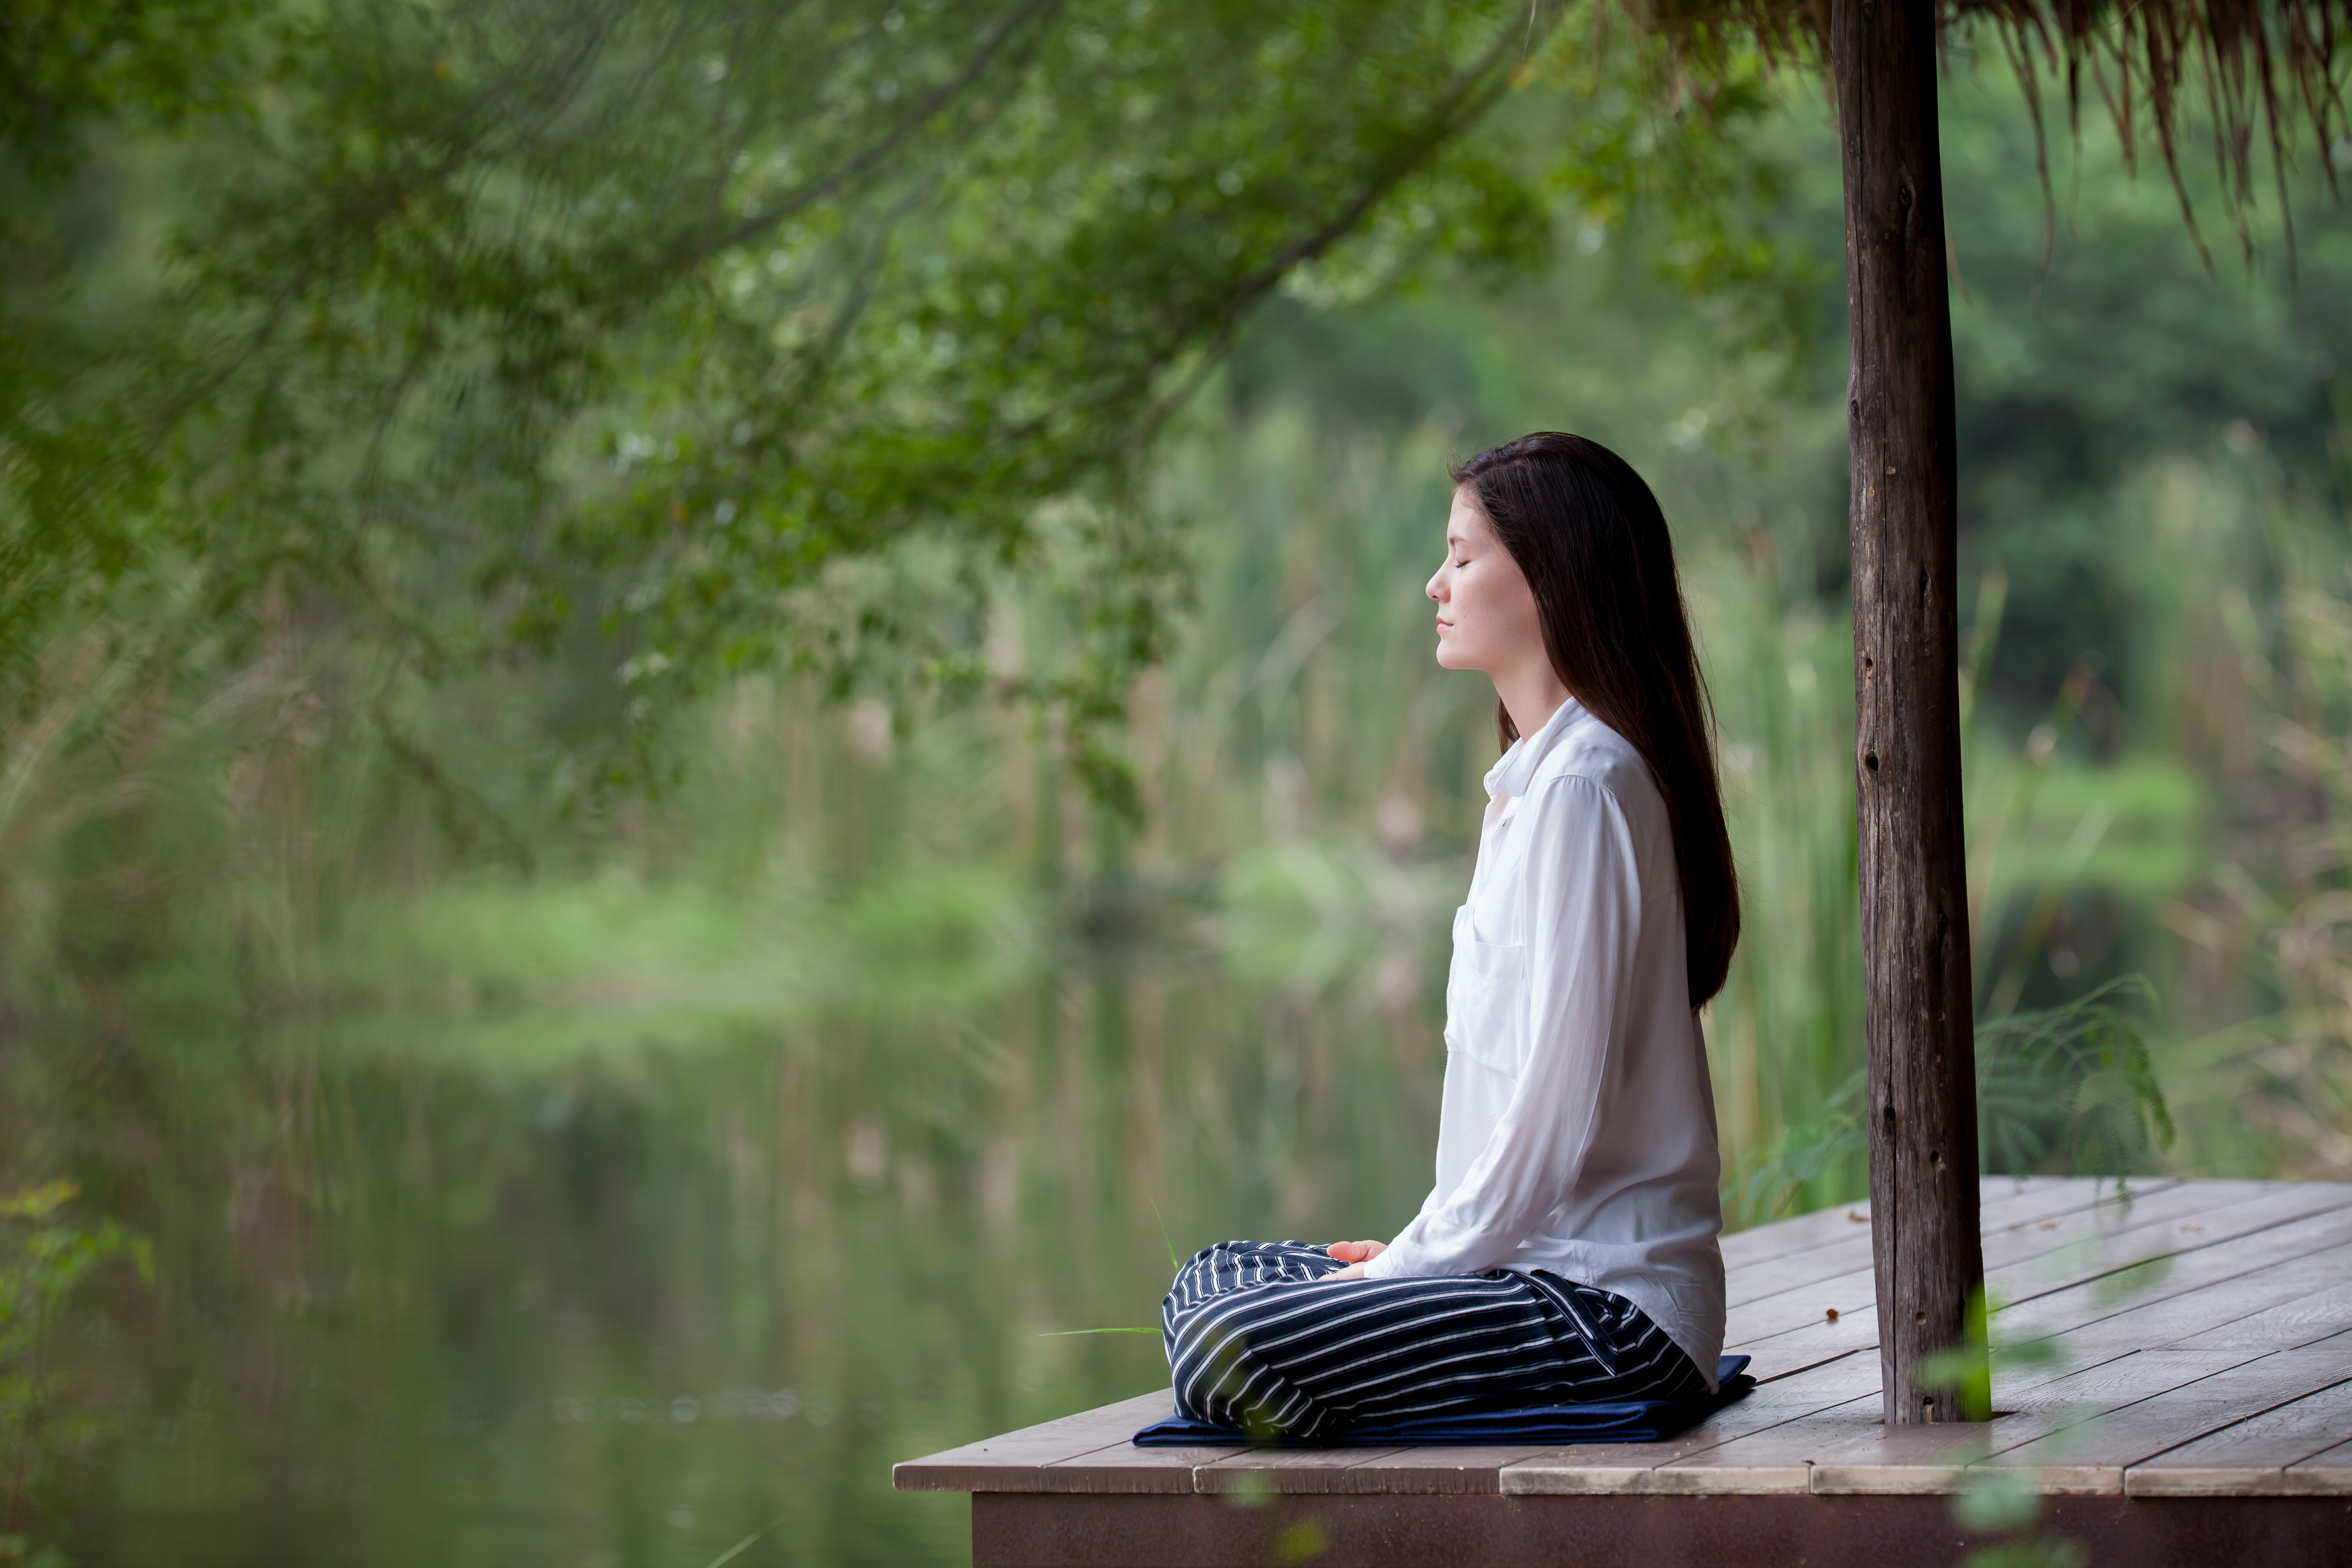 5 Ways Healthcare Can Focus More On Self-Care